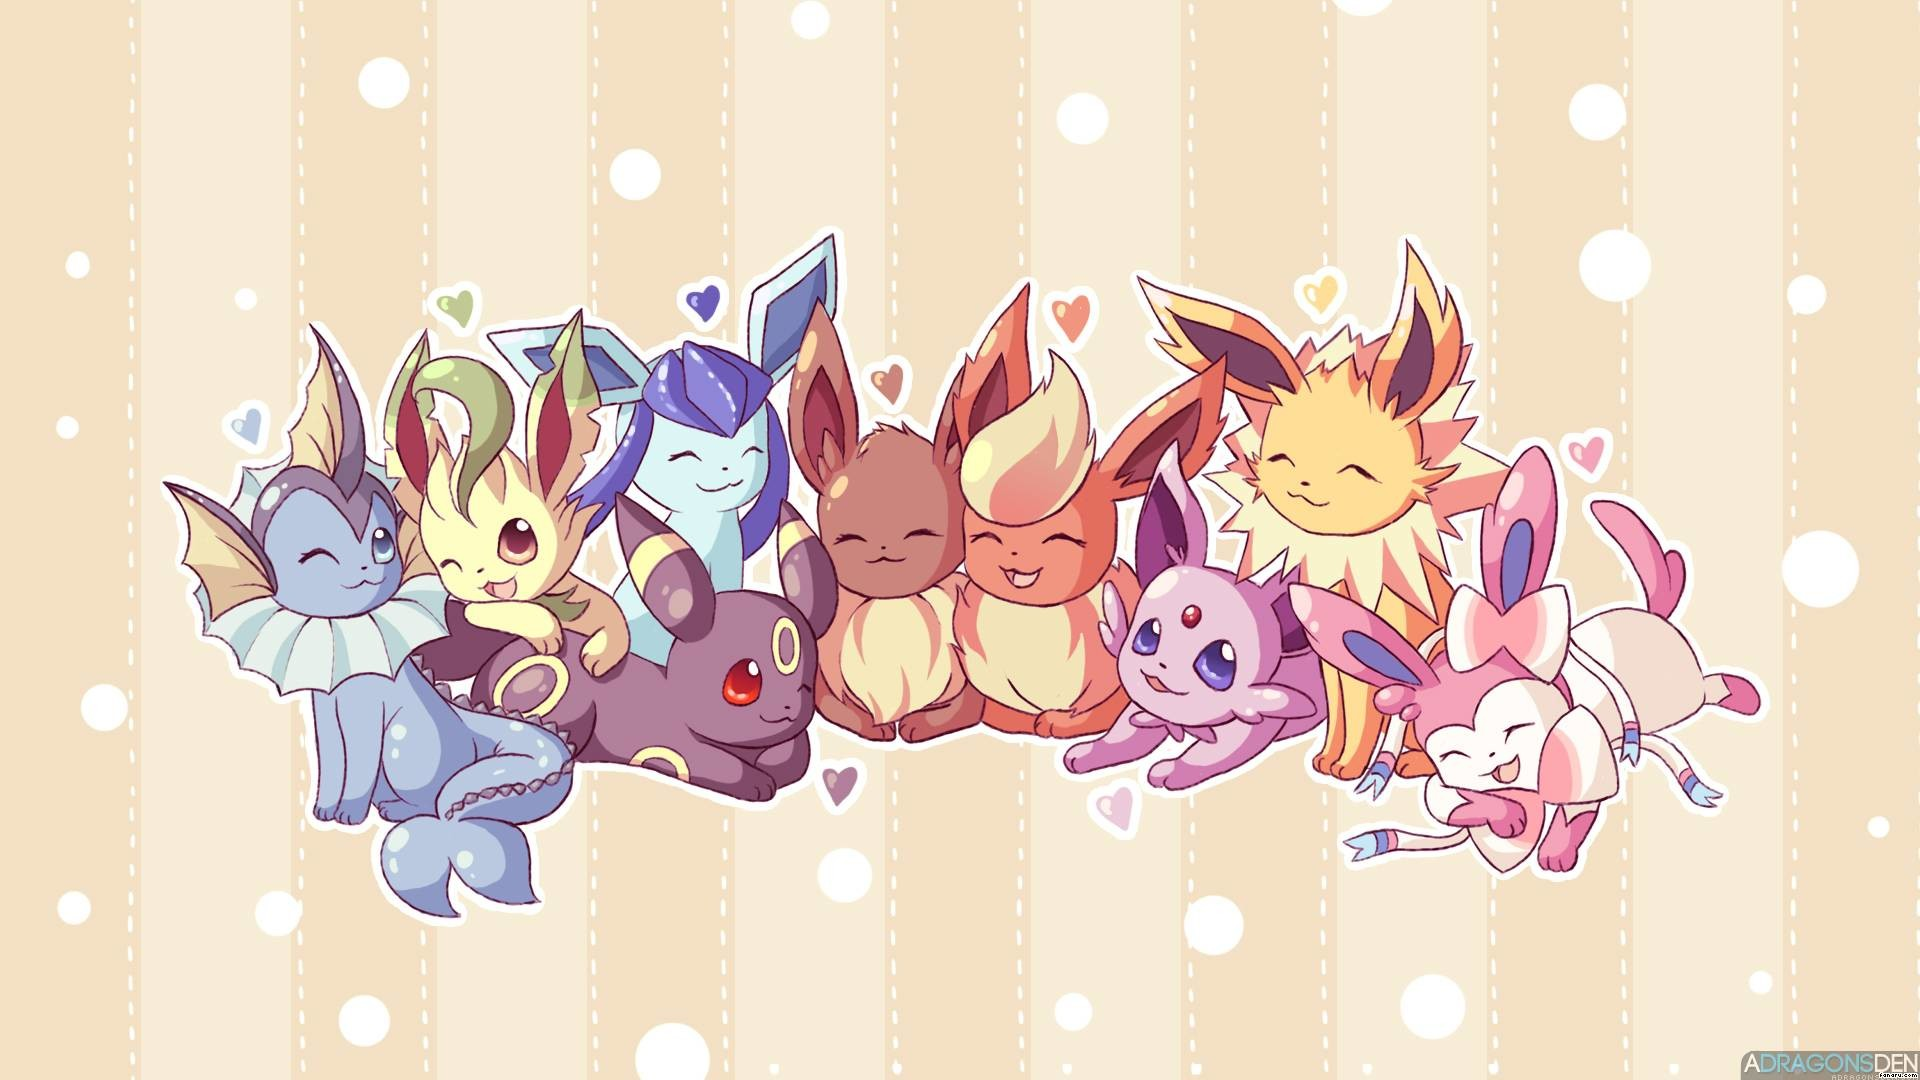 Cutest Pokemon images Cute Pokemon Wallpaper HD wallpaper and background  photos